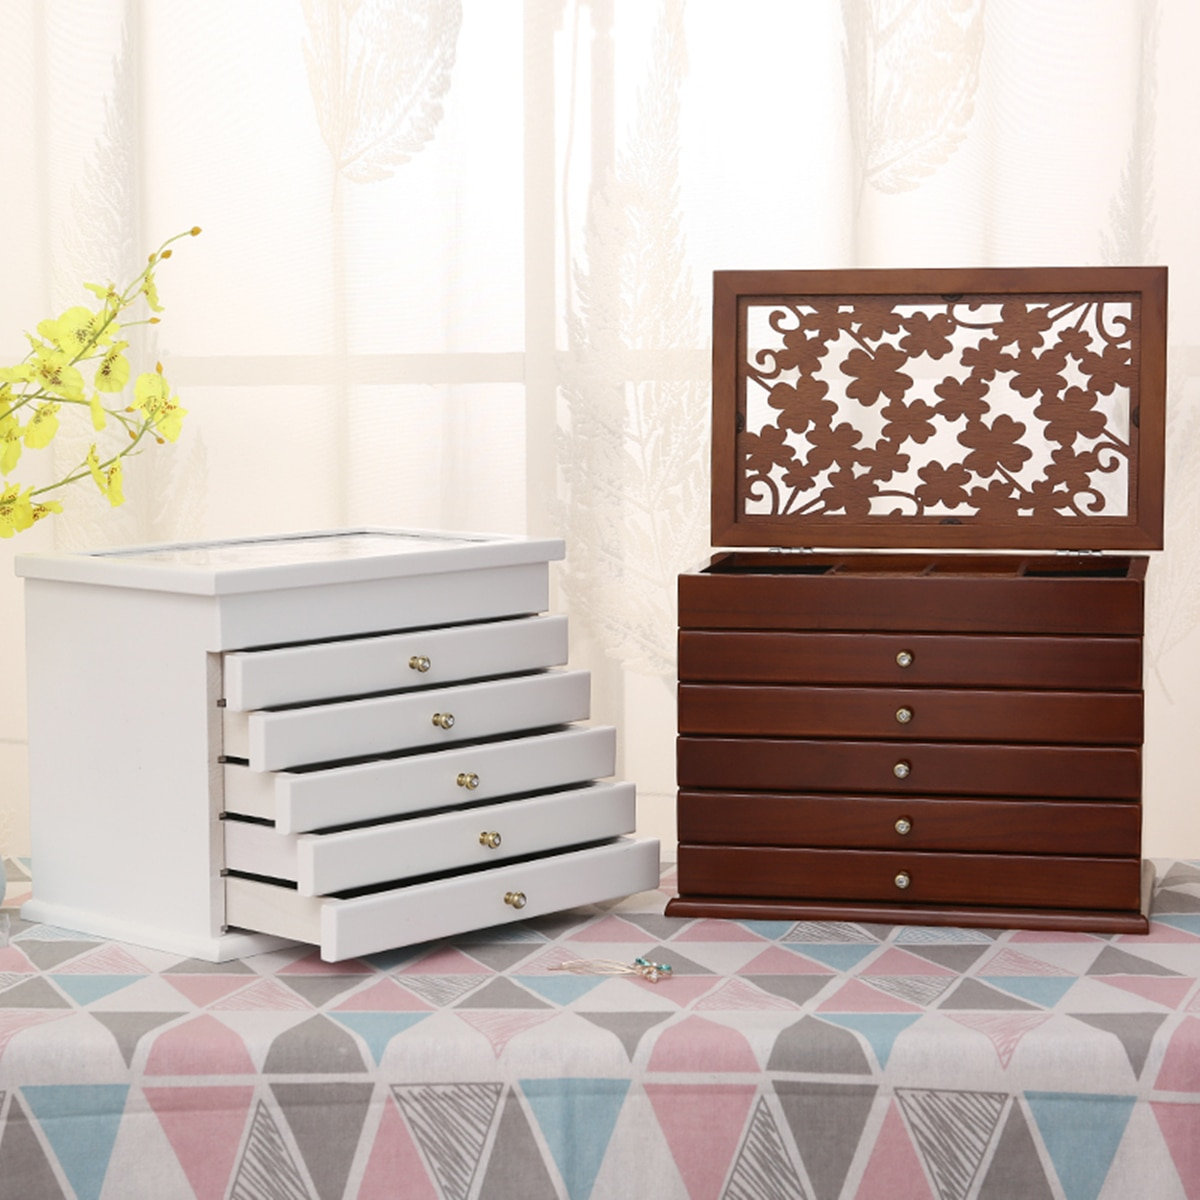 Multi-Layer Big 6 Layers Wooden Jewelry Box Jewelry Display Casket  Earrings Ring Boxes Jewelry Organizer Gift Box White/Brown